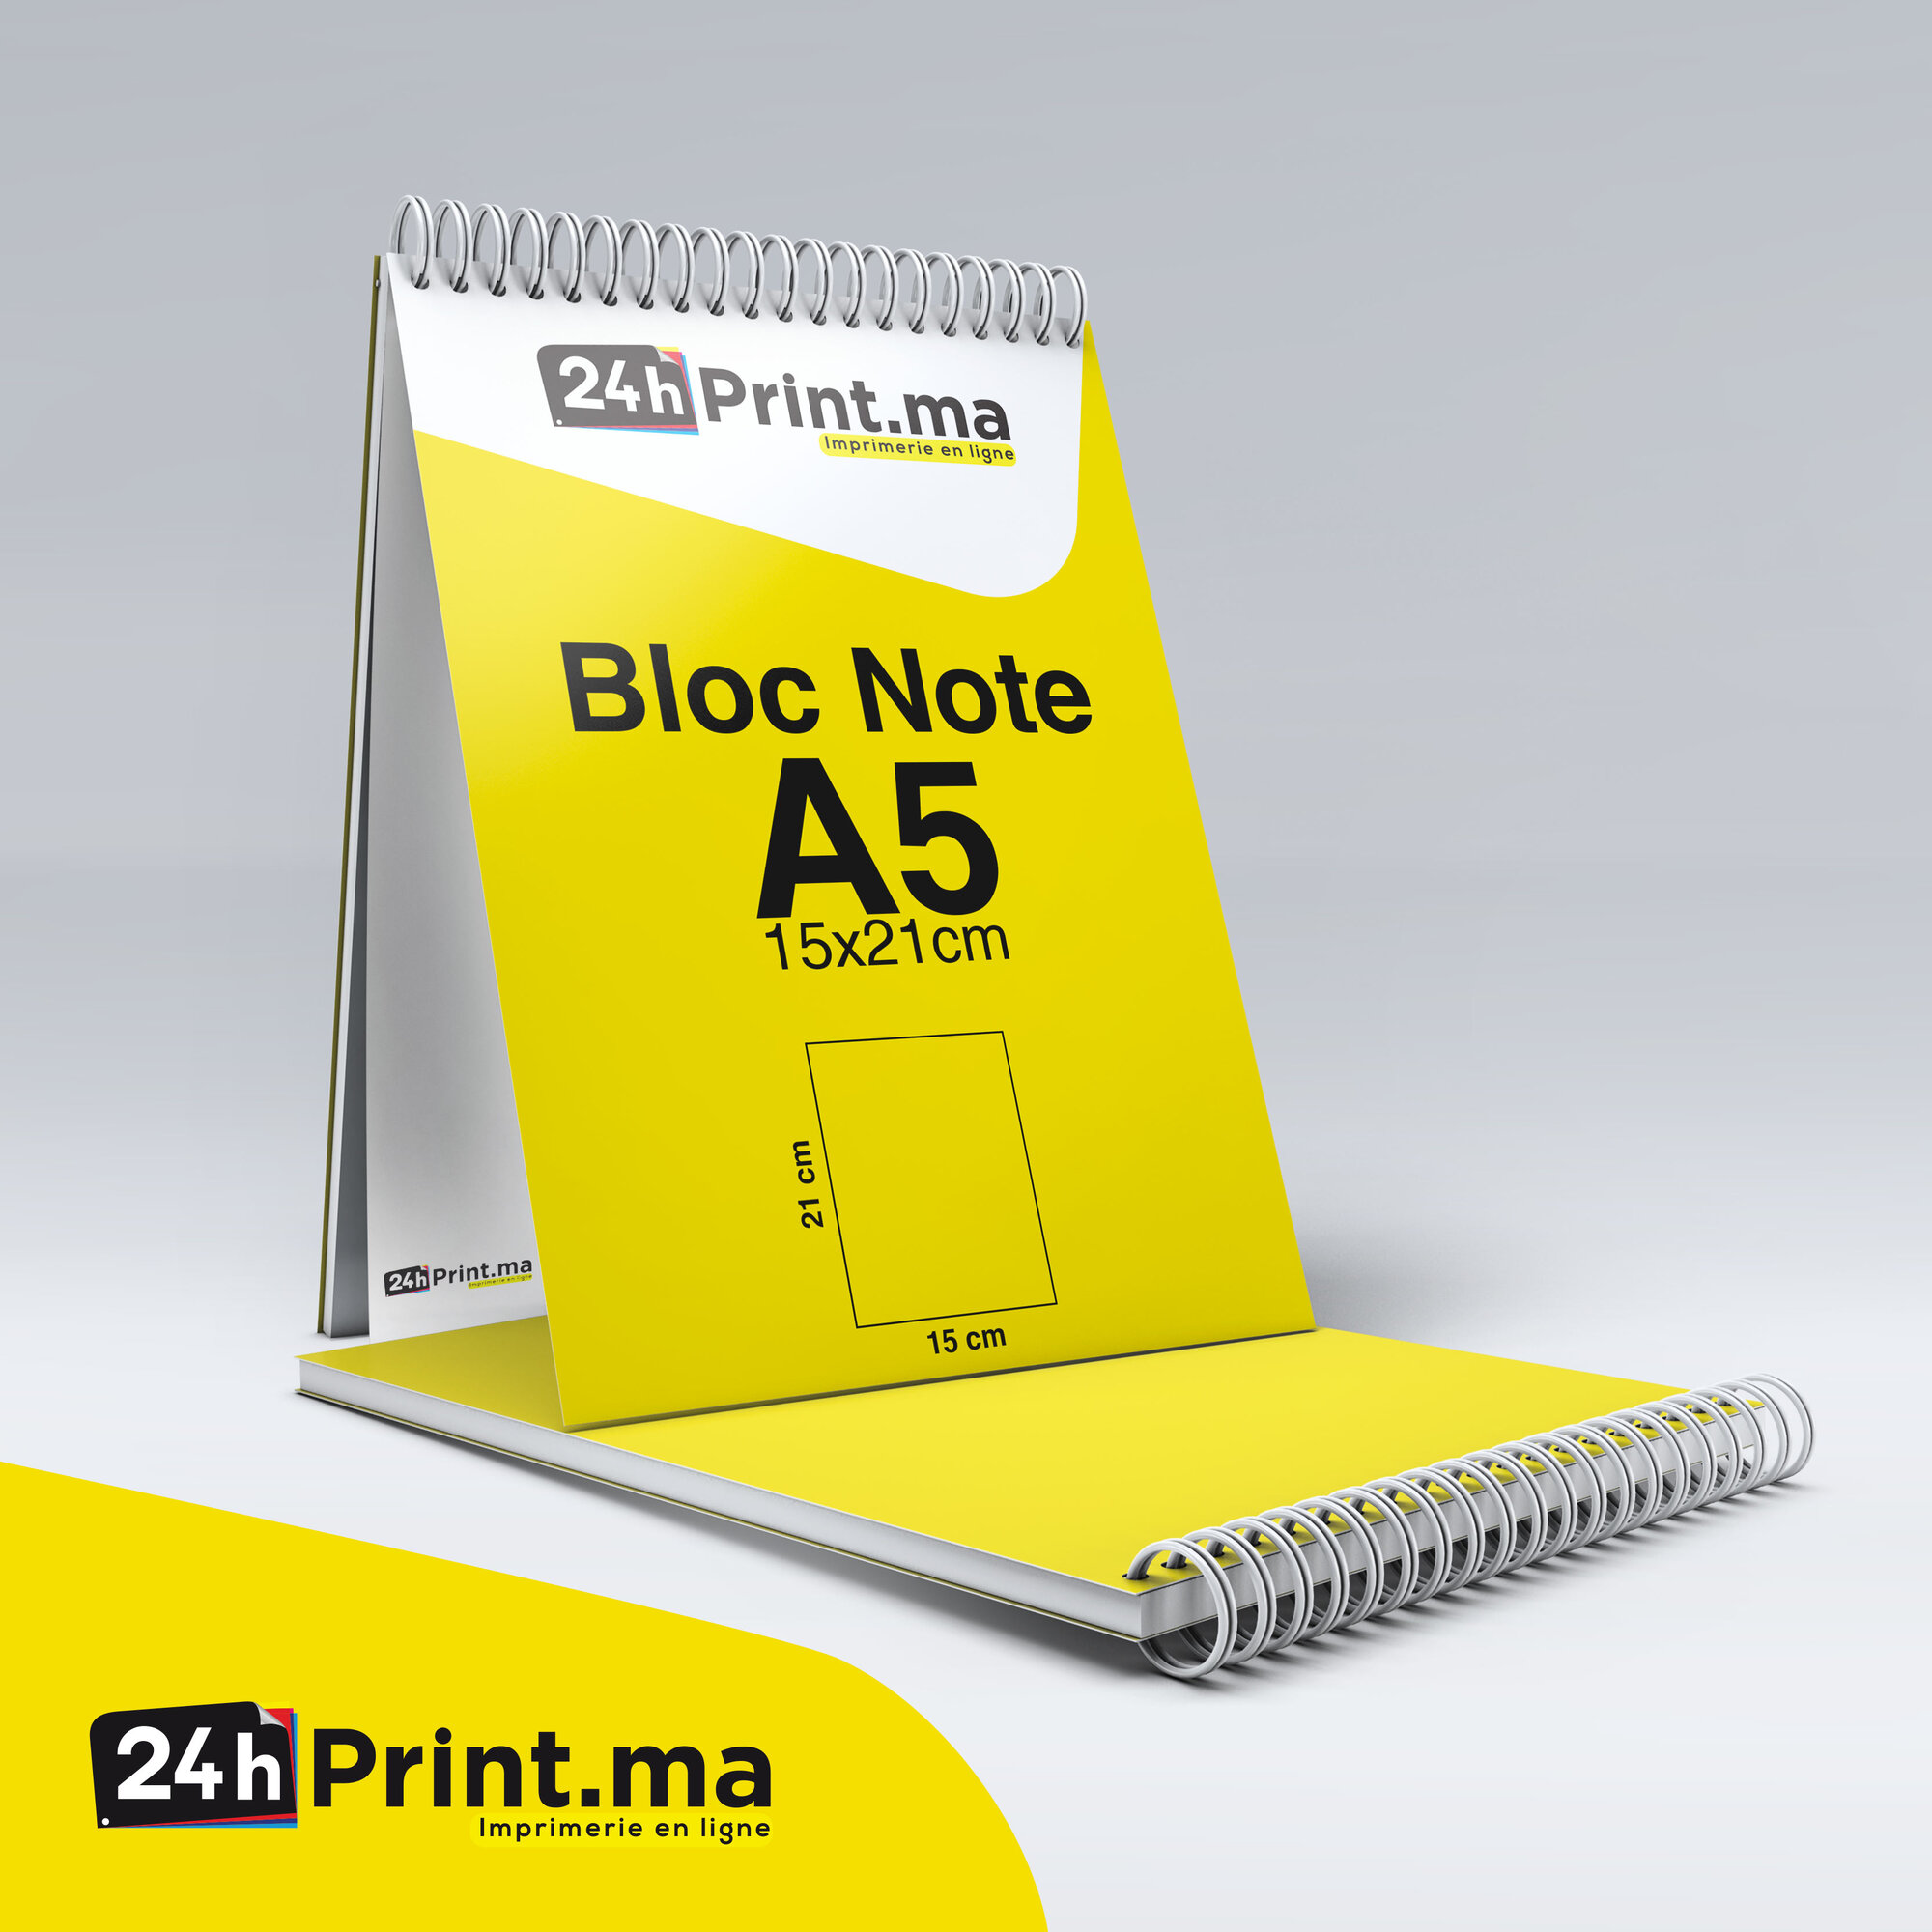 https://www.24hprint.ma/images/products_gallery_images/BlocnoteA5.jpg